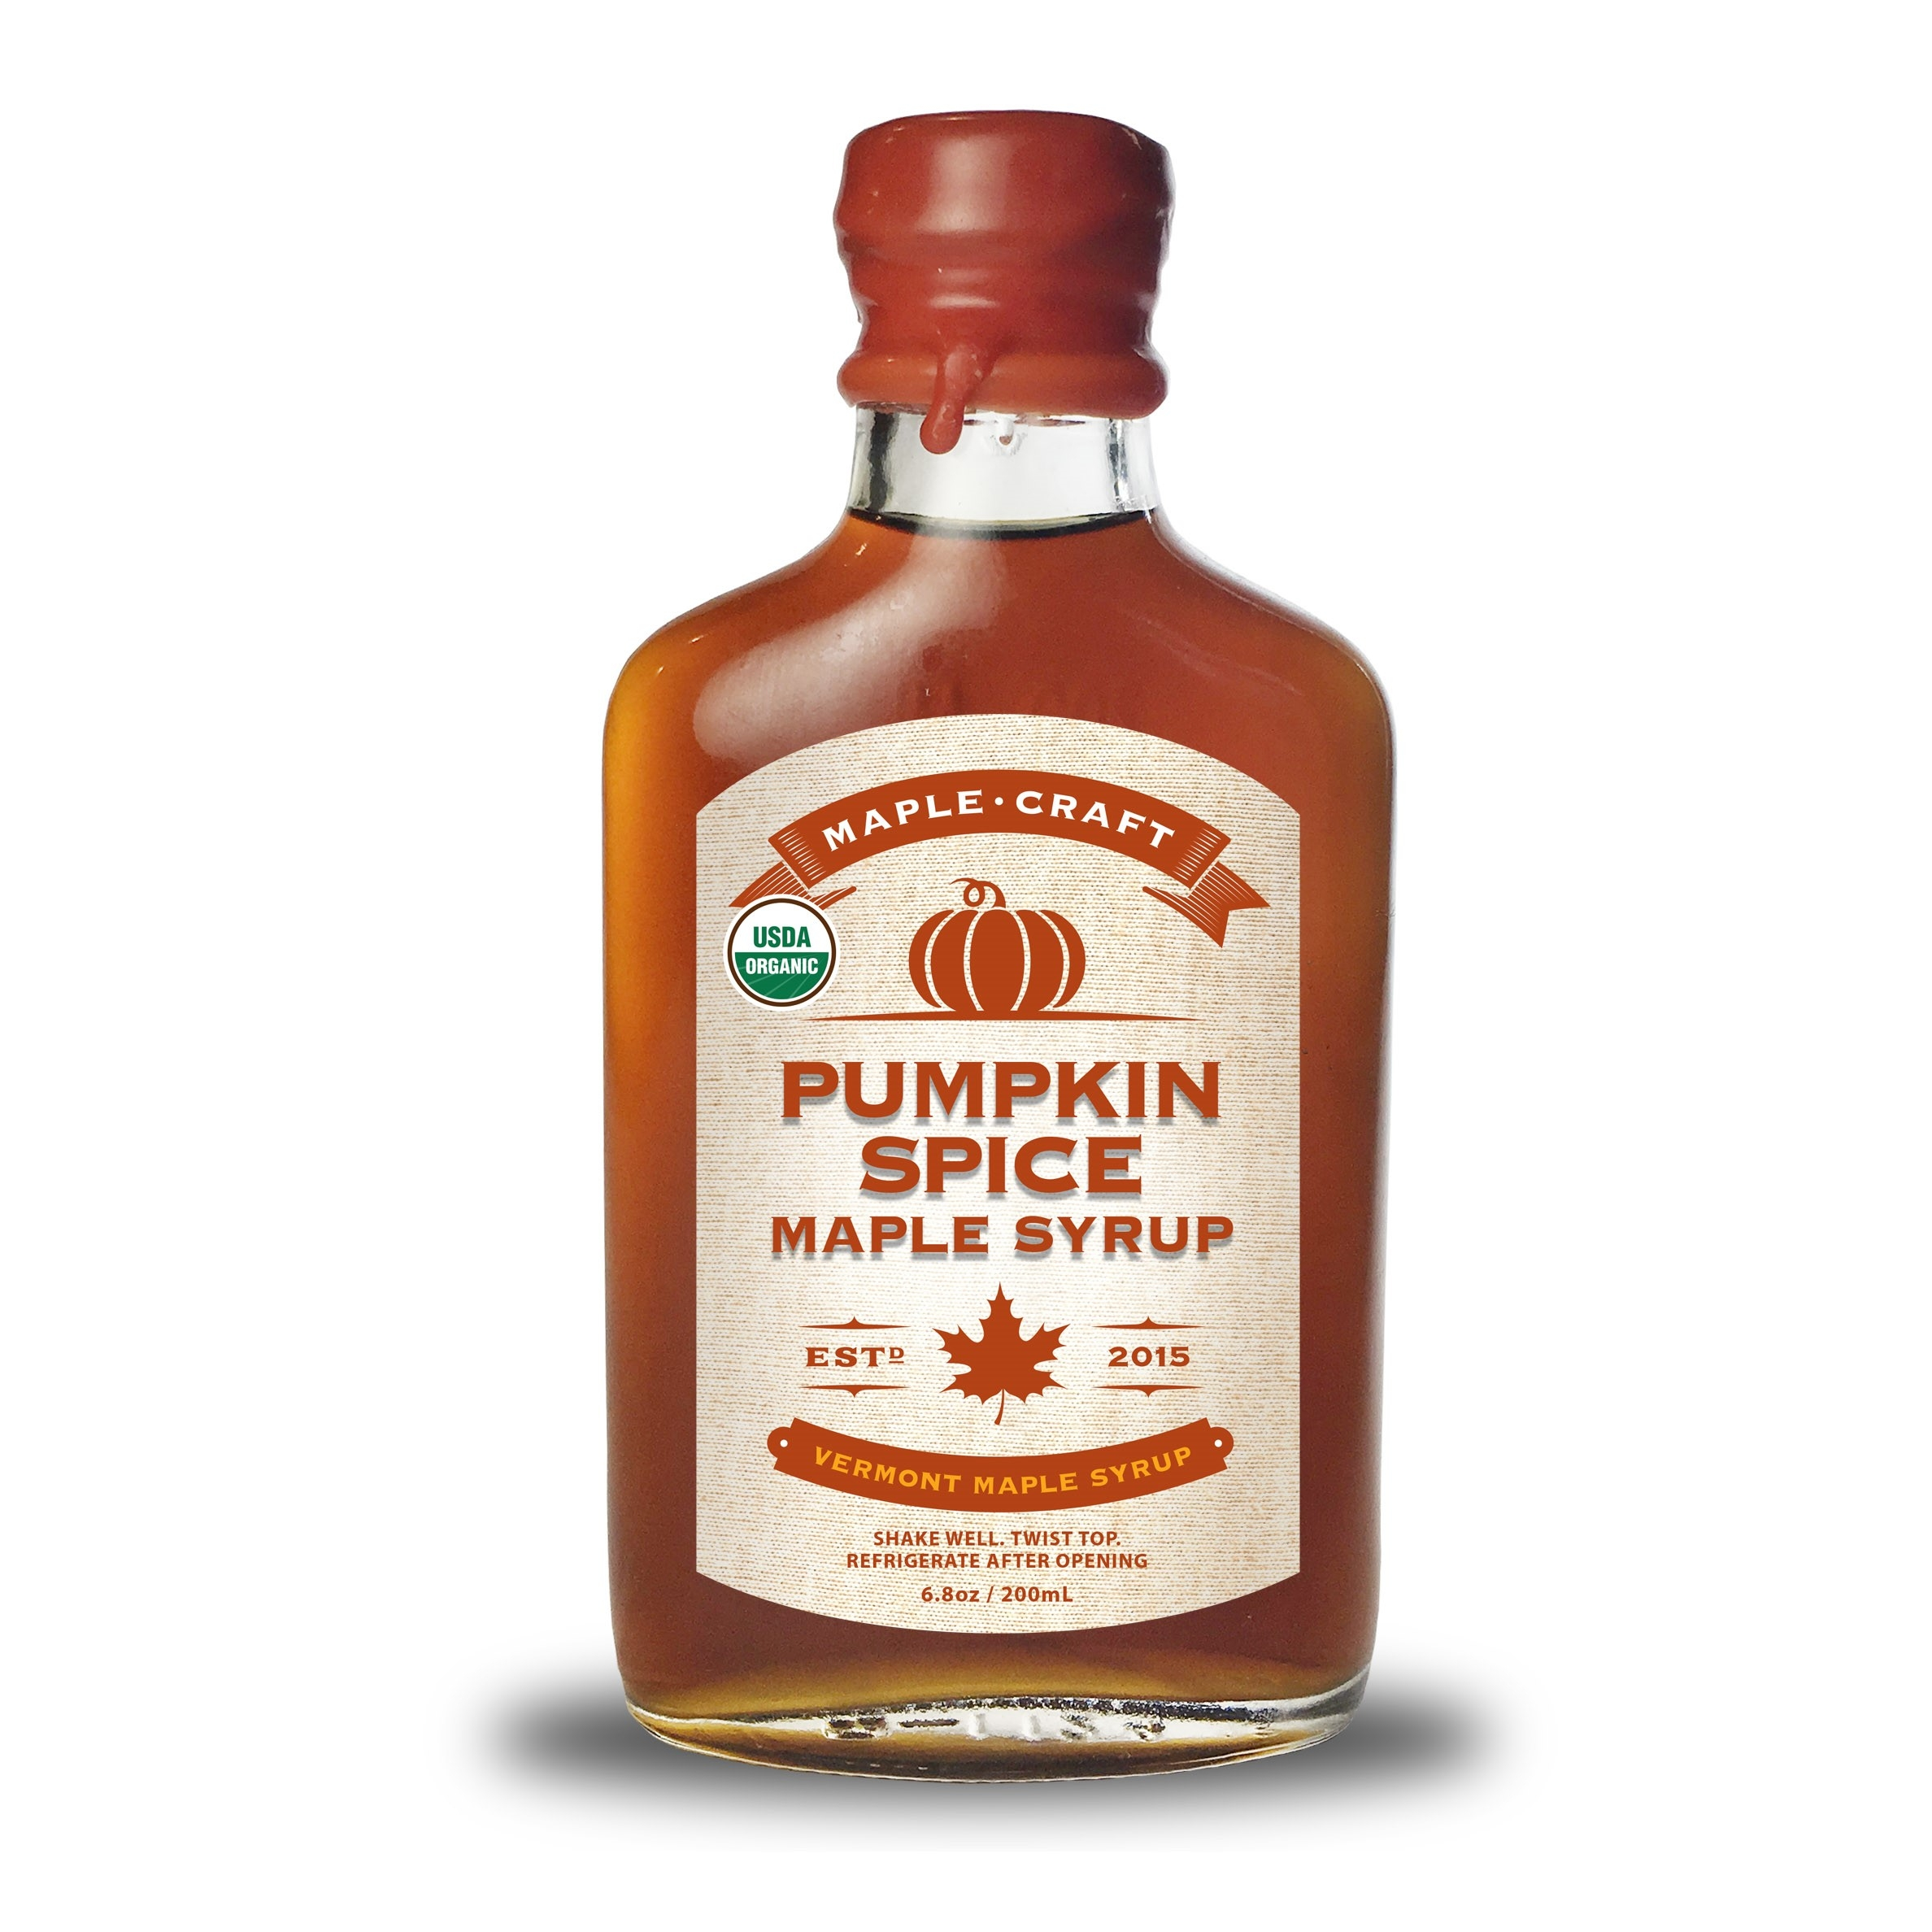 Maple Craft Pumpkin Spice Flavored Maple Syrup